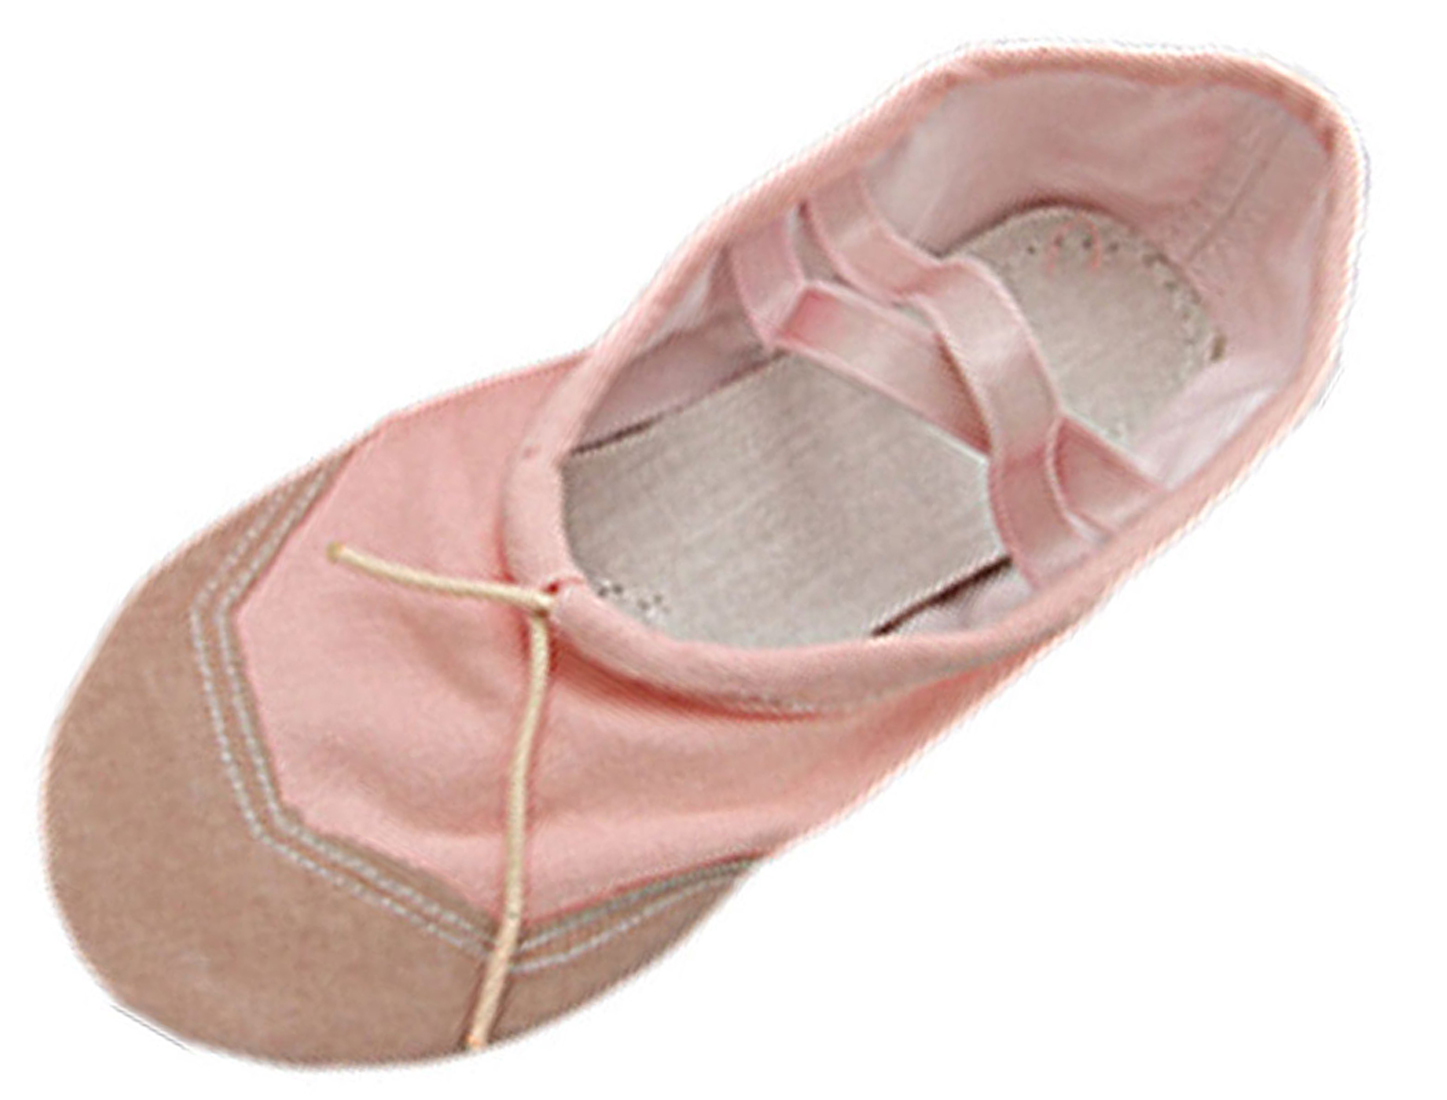 Pink Soft Ballet Dancing Dance Shoes for Girls Size 1